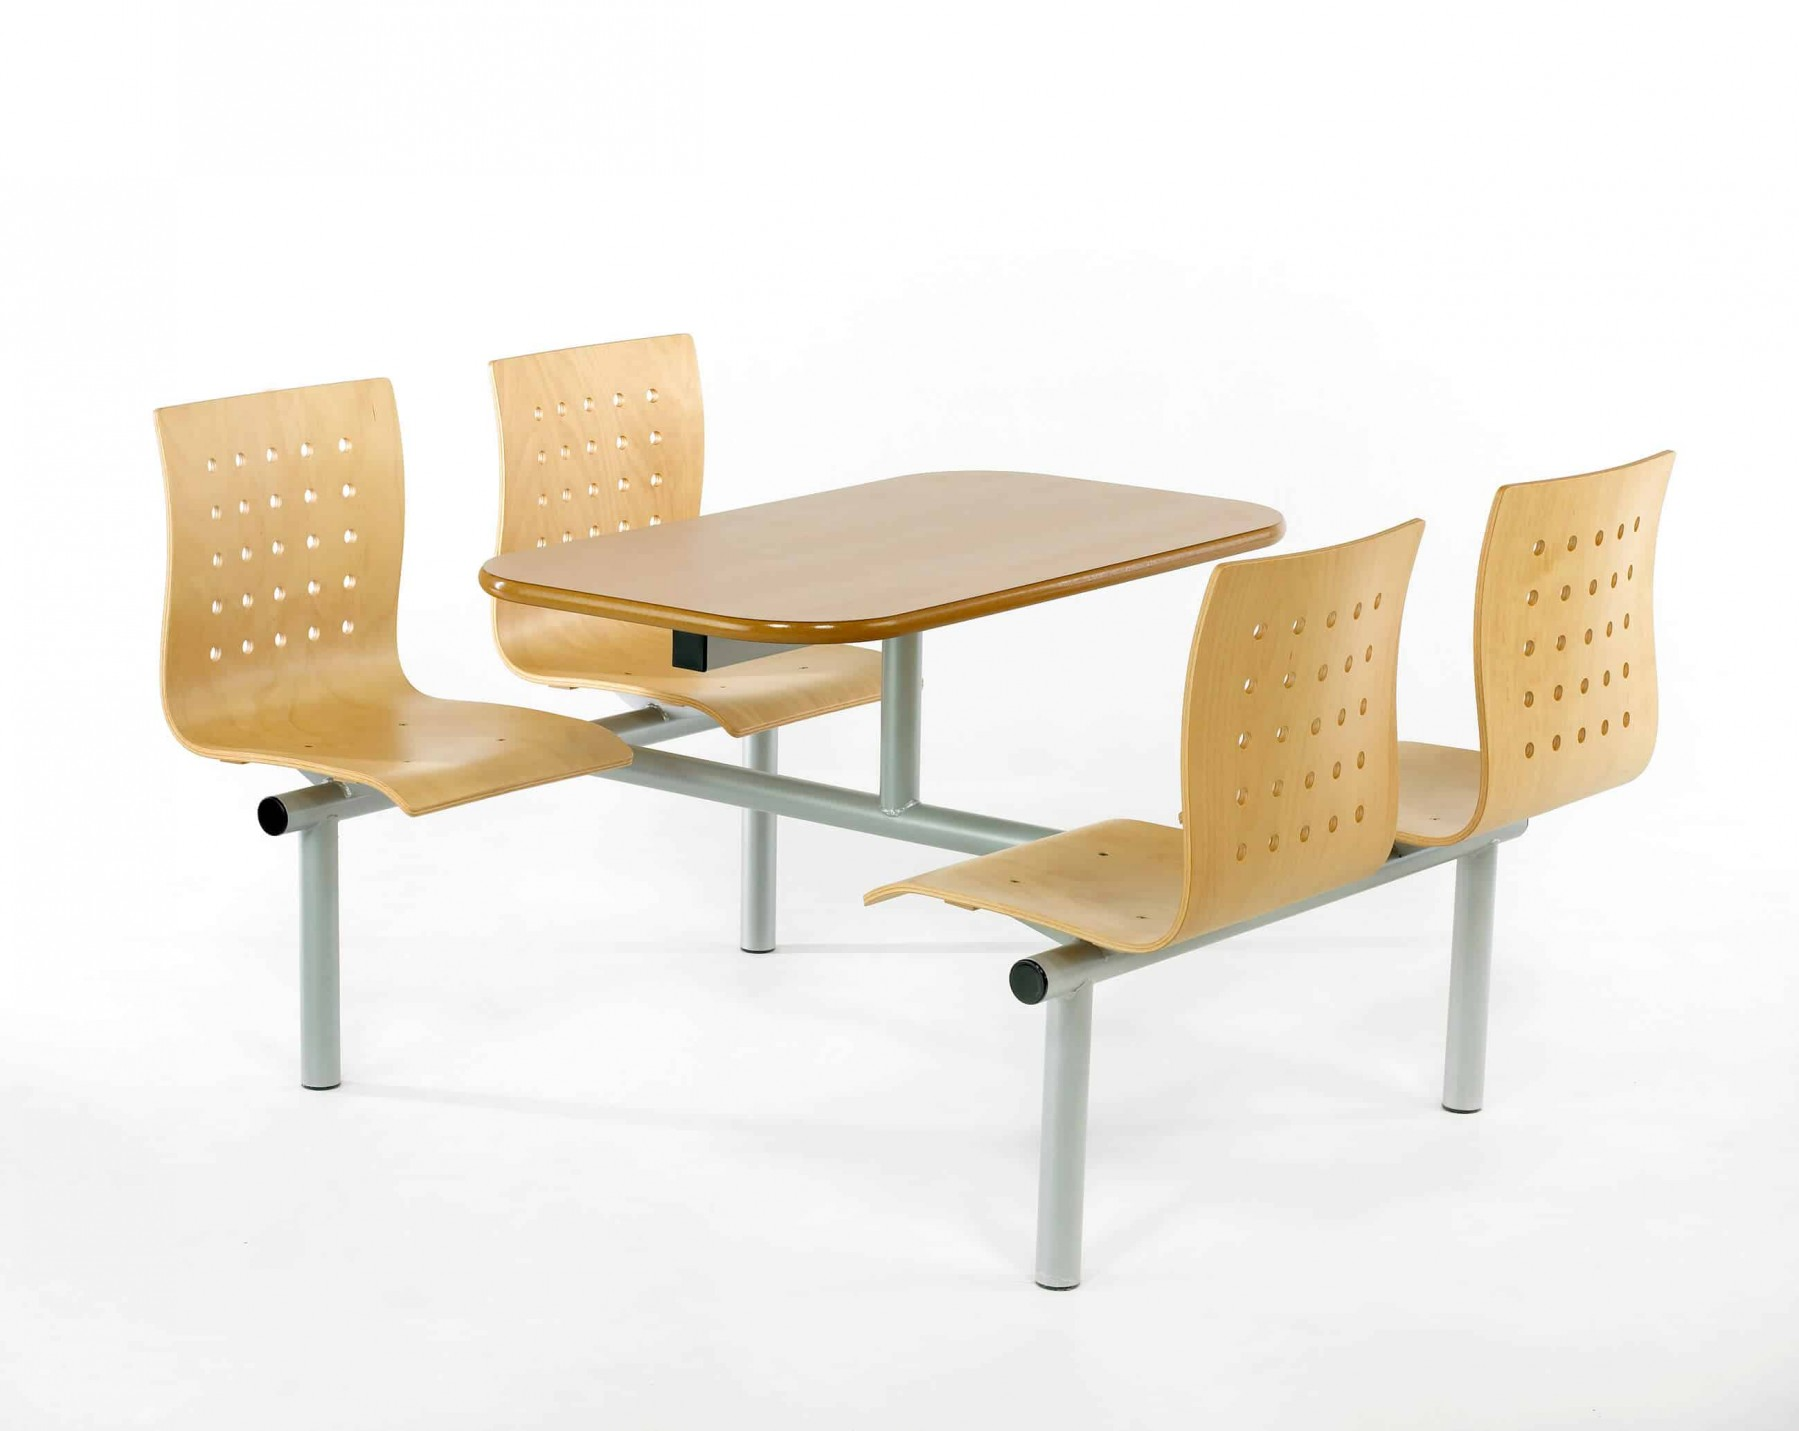 Canteen Table with Perforated Wooden Seats